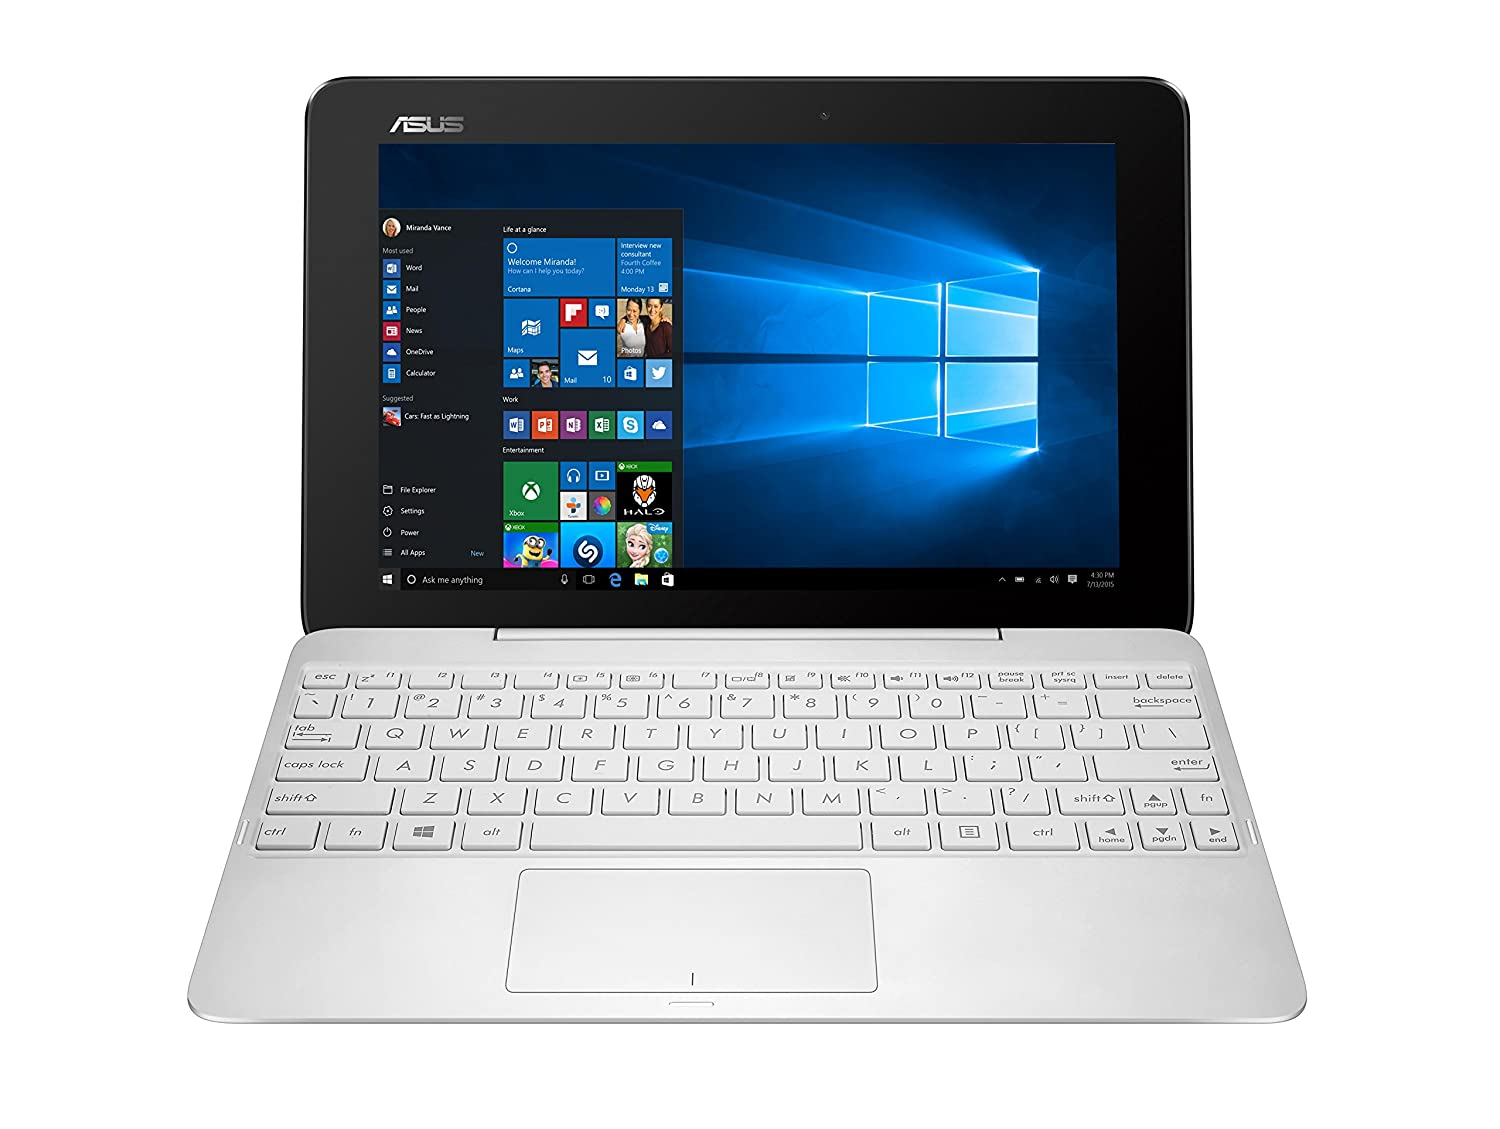 ASUS T100H 10 1 inch Convertible Notebook (Intel Atom Z8500 1 44 GHz  Processor, 2 GB RAM, 64 GB eMMC, Integrated Graphics, Windows 10) - White